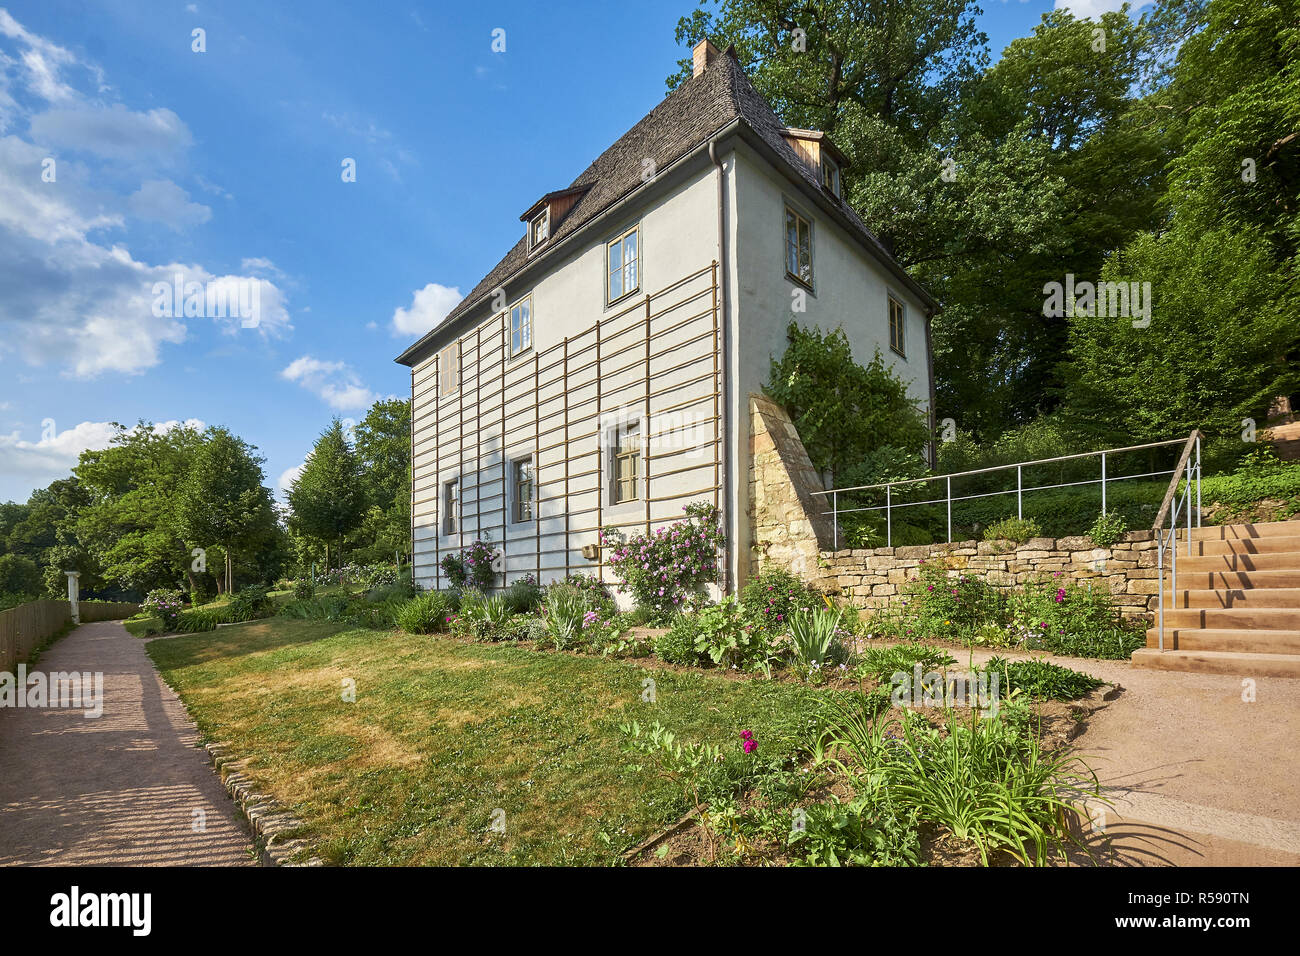 Goethe garden house in the park on the Ilm, Weimar, Thuringia Stock Photo